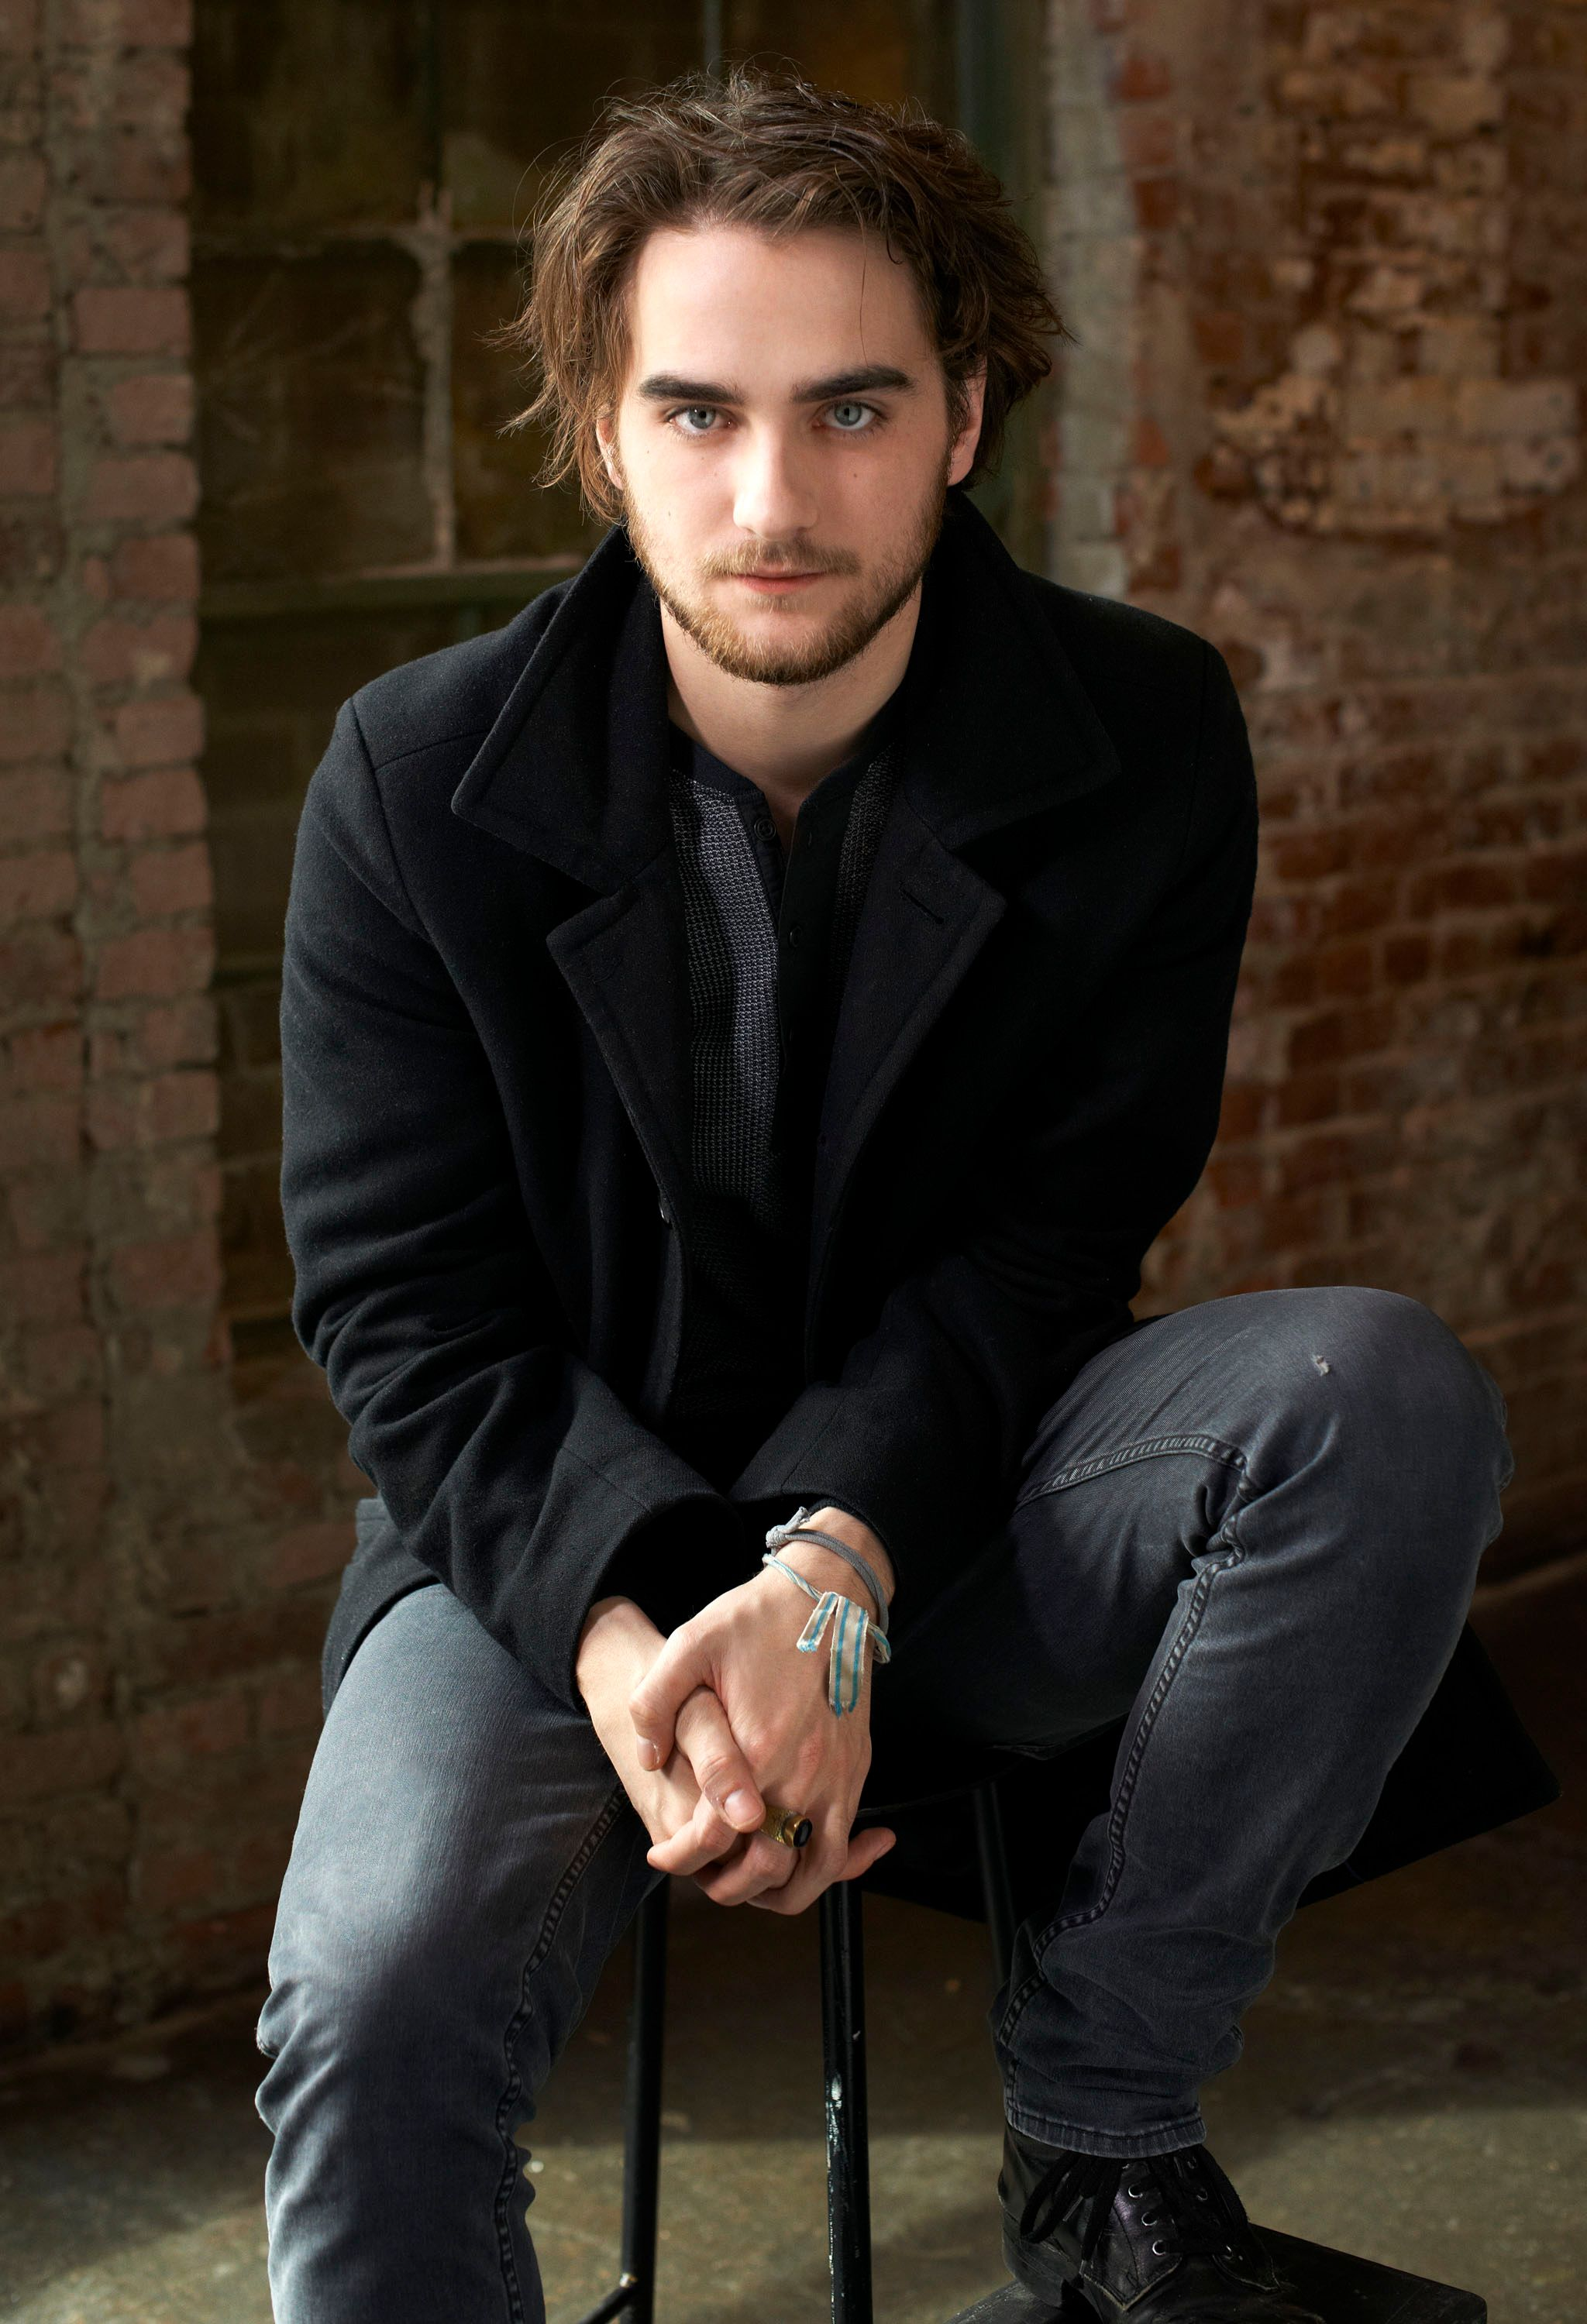 landon liboiron giflandon liboiron gif, landon liboiron gif hunt, landon liboiron and bill skarsgård, landon liboiron height, landon liboiron height weight, landon liboiron instagram, landon liboiron vk, landon liboiron mother once said lyrics, landon liboiron, landon liboiron 2015, landon liboiron twitter, landon liboiron 2014, landon liboiron hemlock grove, landon liboiron wiki, landon liboiron interview, landon liboiron icons, landon liboiron girl in progress, landon liboiron wdw, landon liboiron photoshoot, landon liboiron youtube